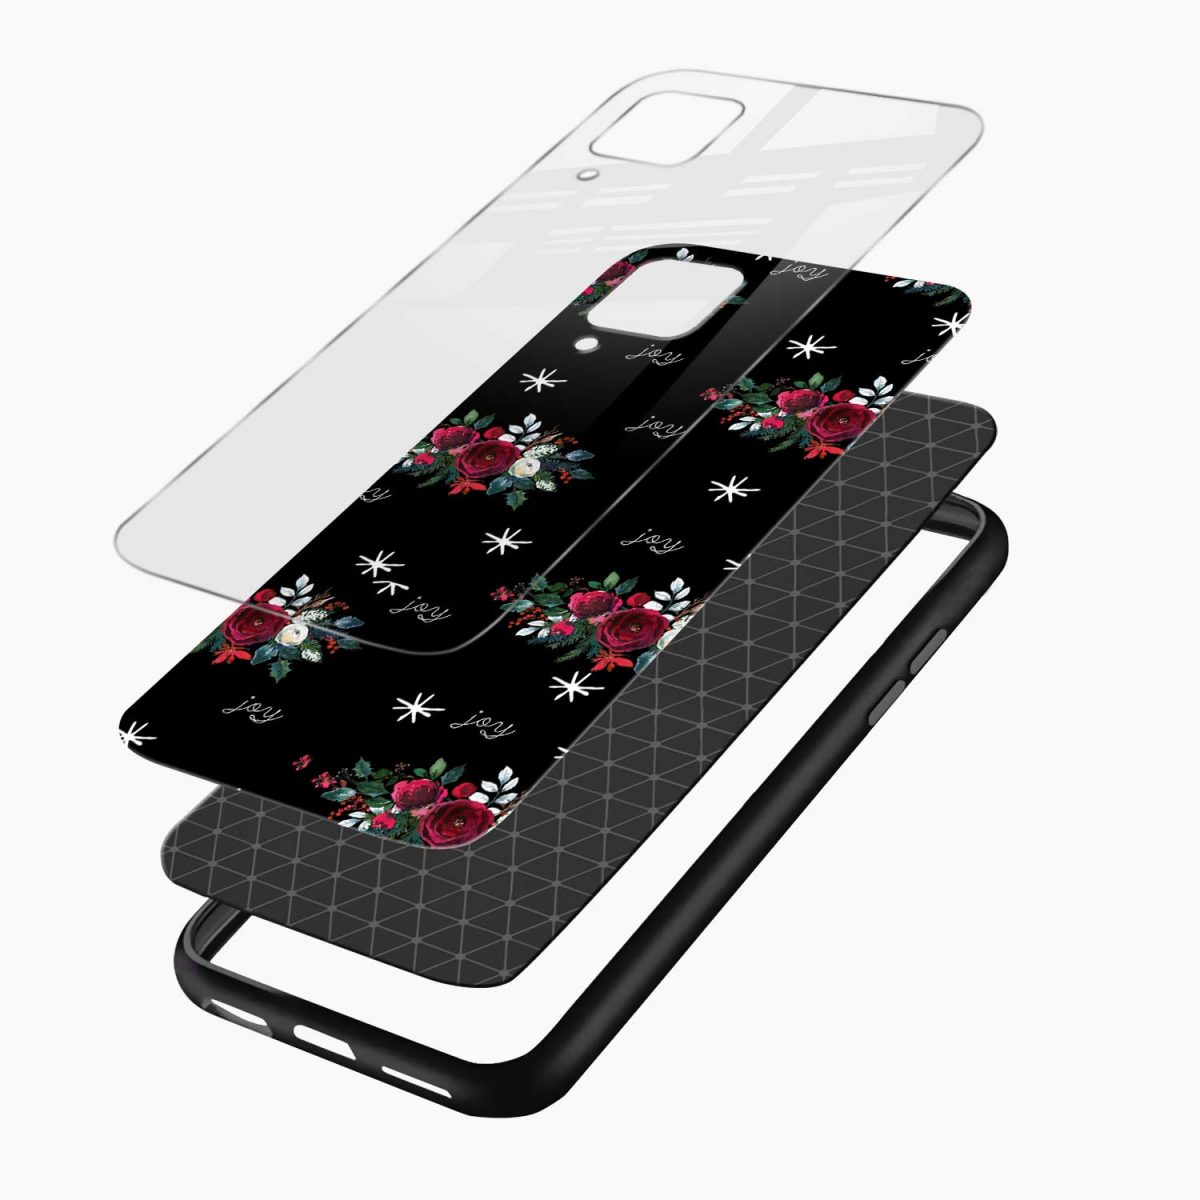 joy floral black colored layers view samsung galaxy a12 back cover